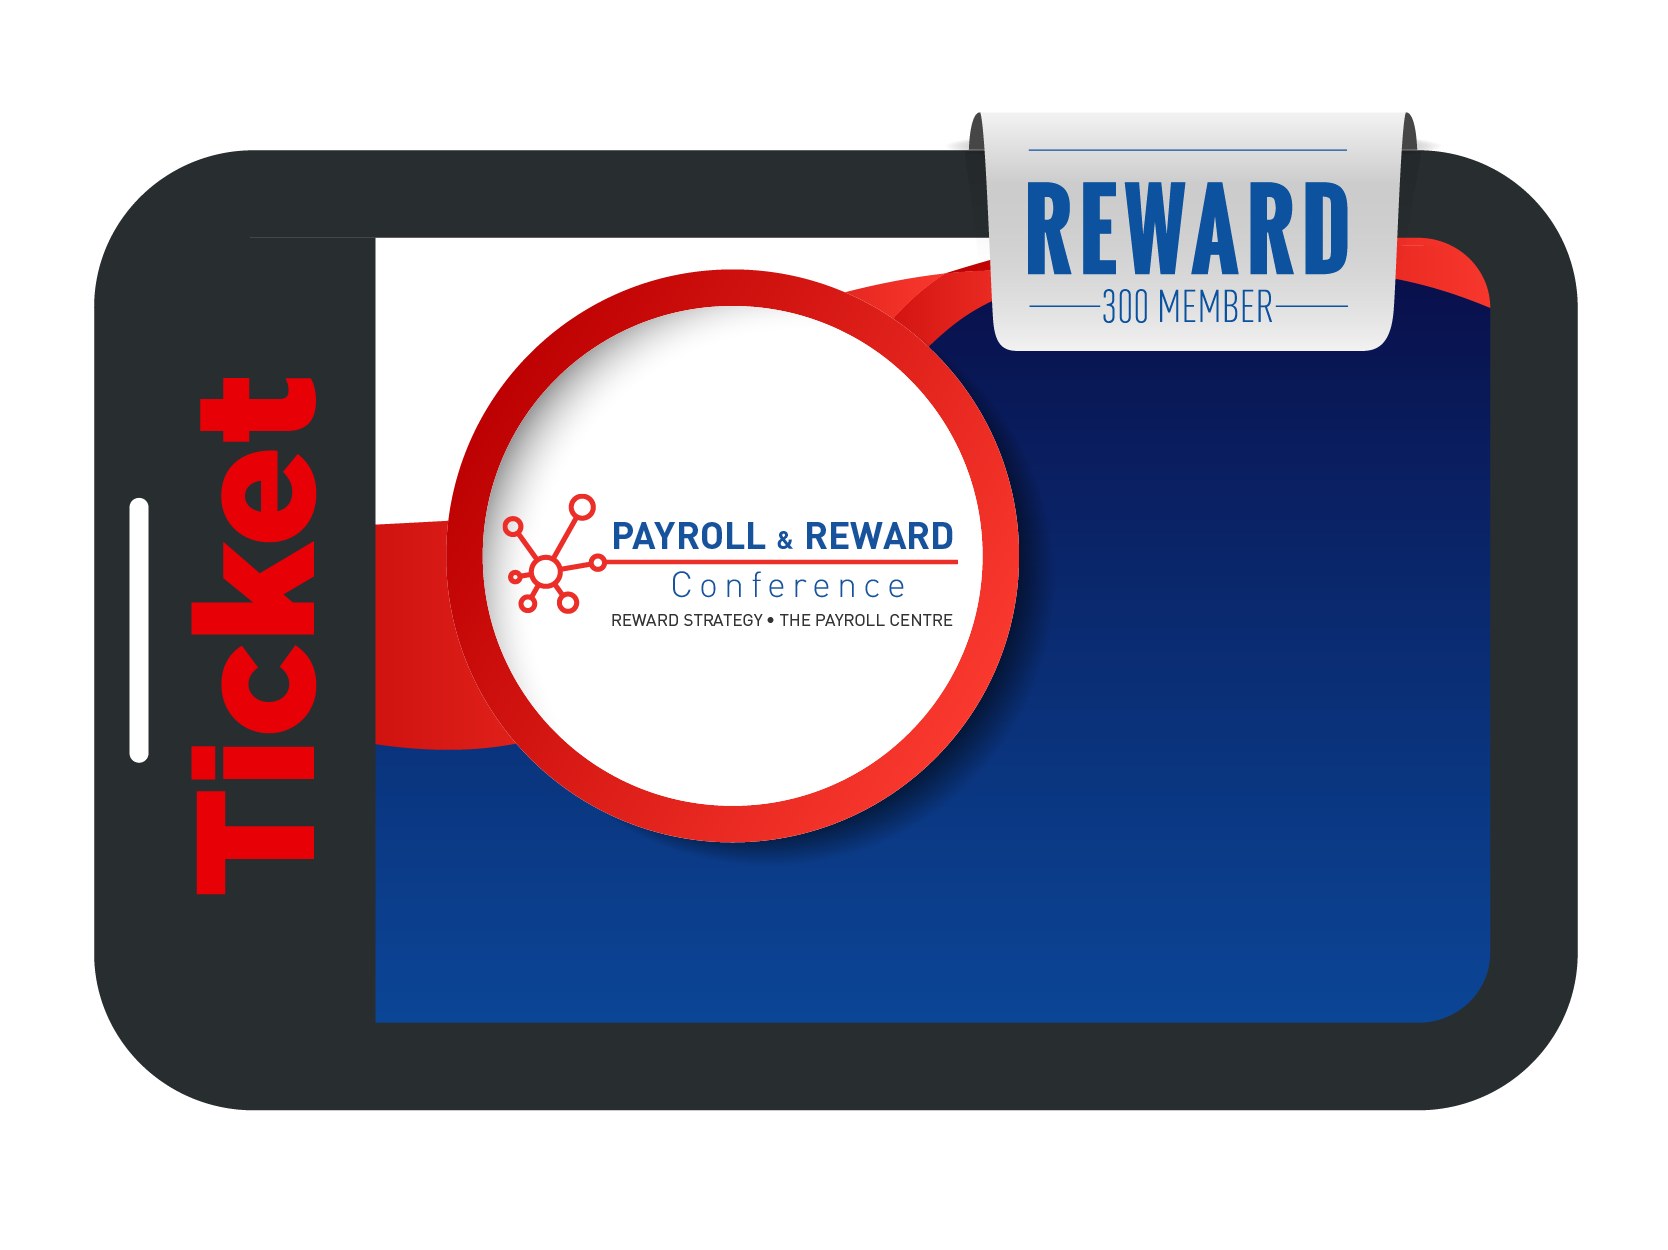 Payroll & Reward Conference - Digital Pass - For Reward 300 Members 2020 & 2021